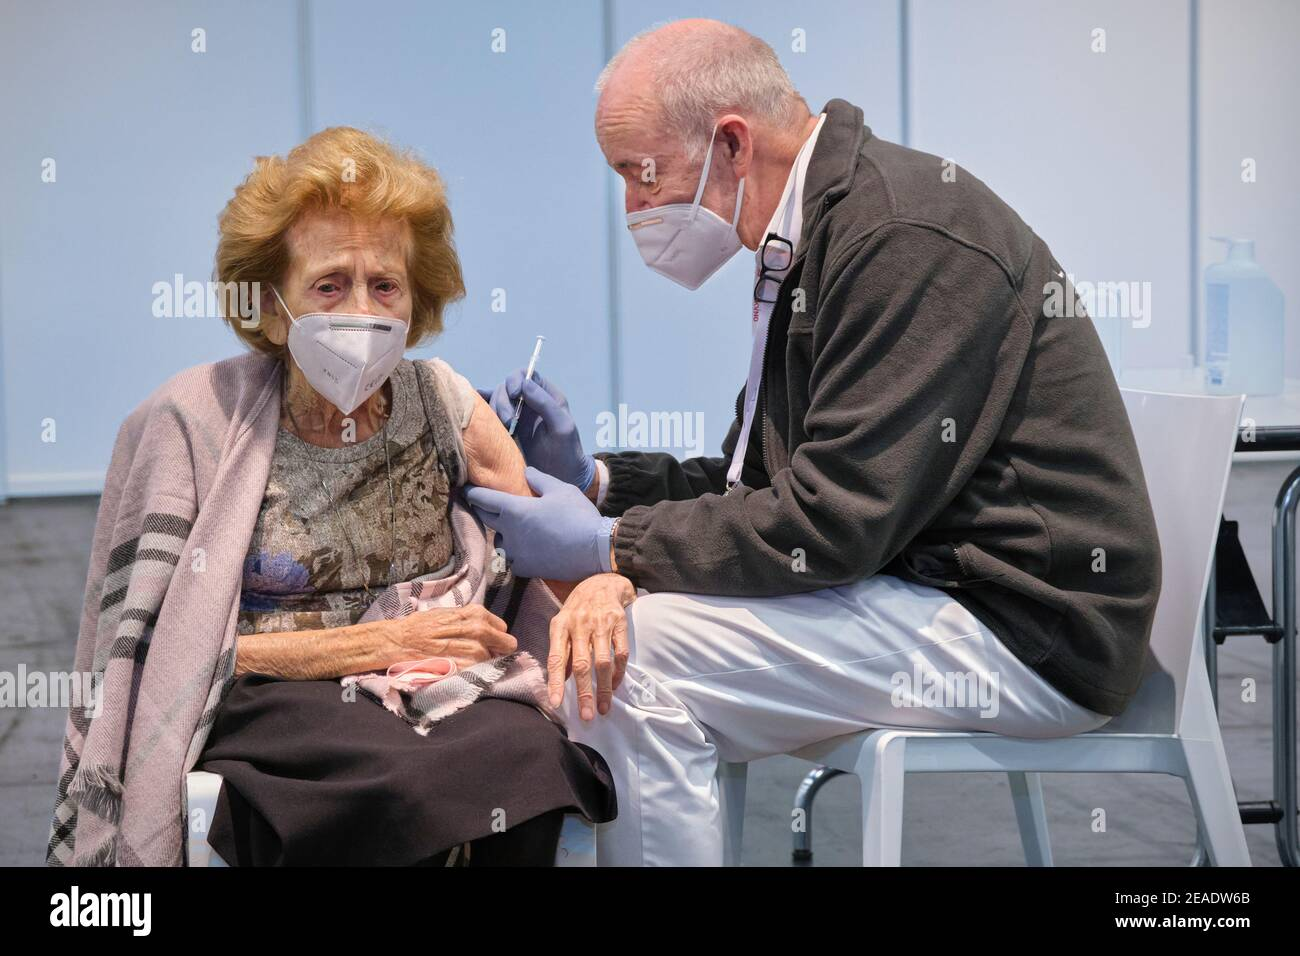 On 8 February, the vaccination centre of the city of Cologne started its long-awaited operation. Stock Photo